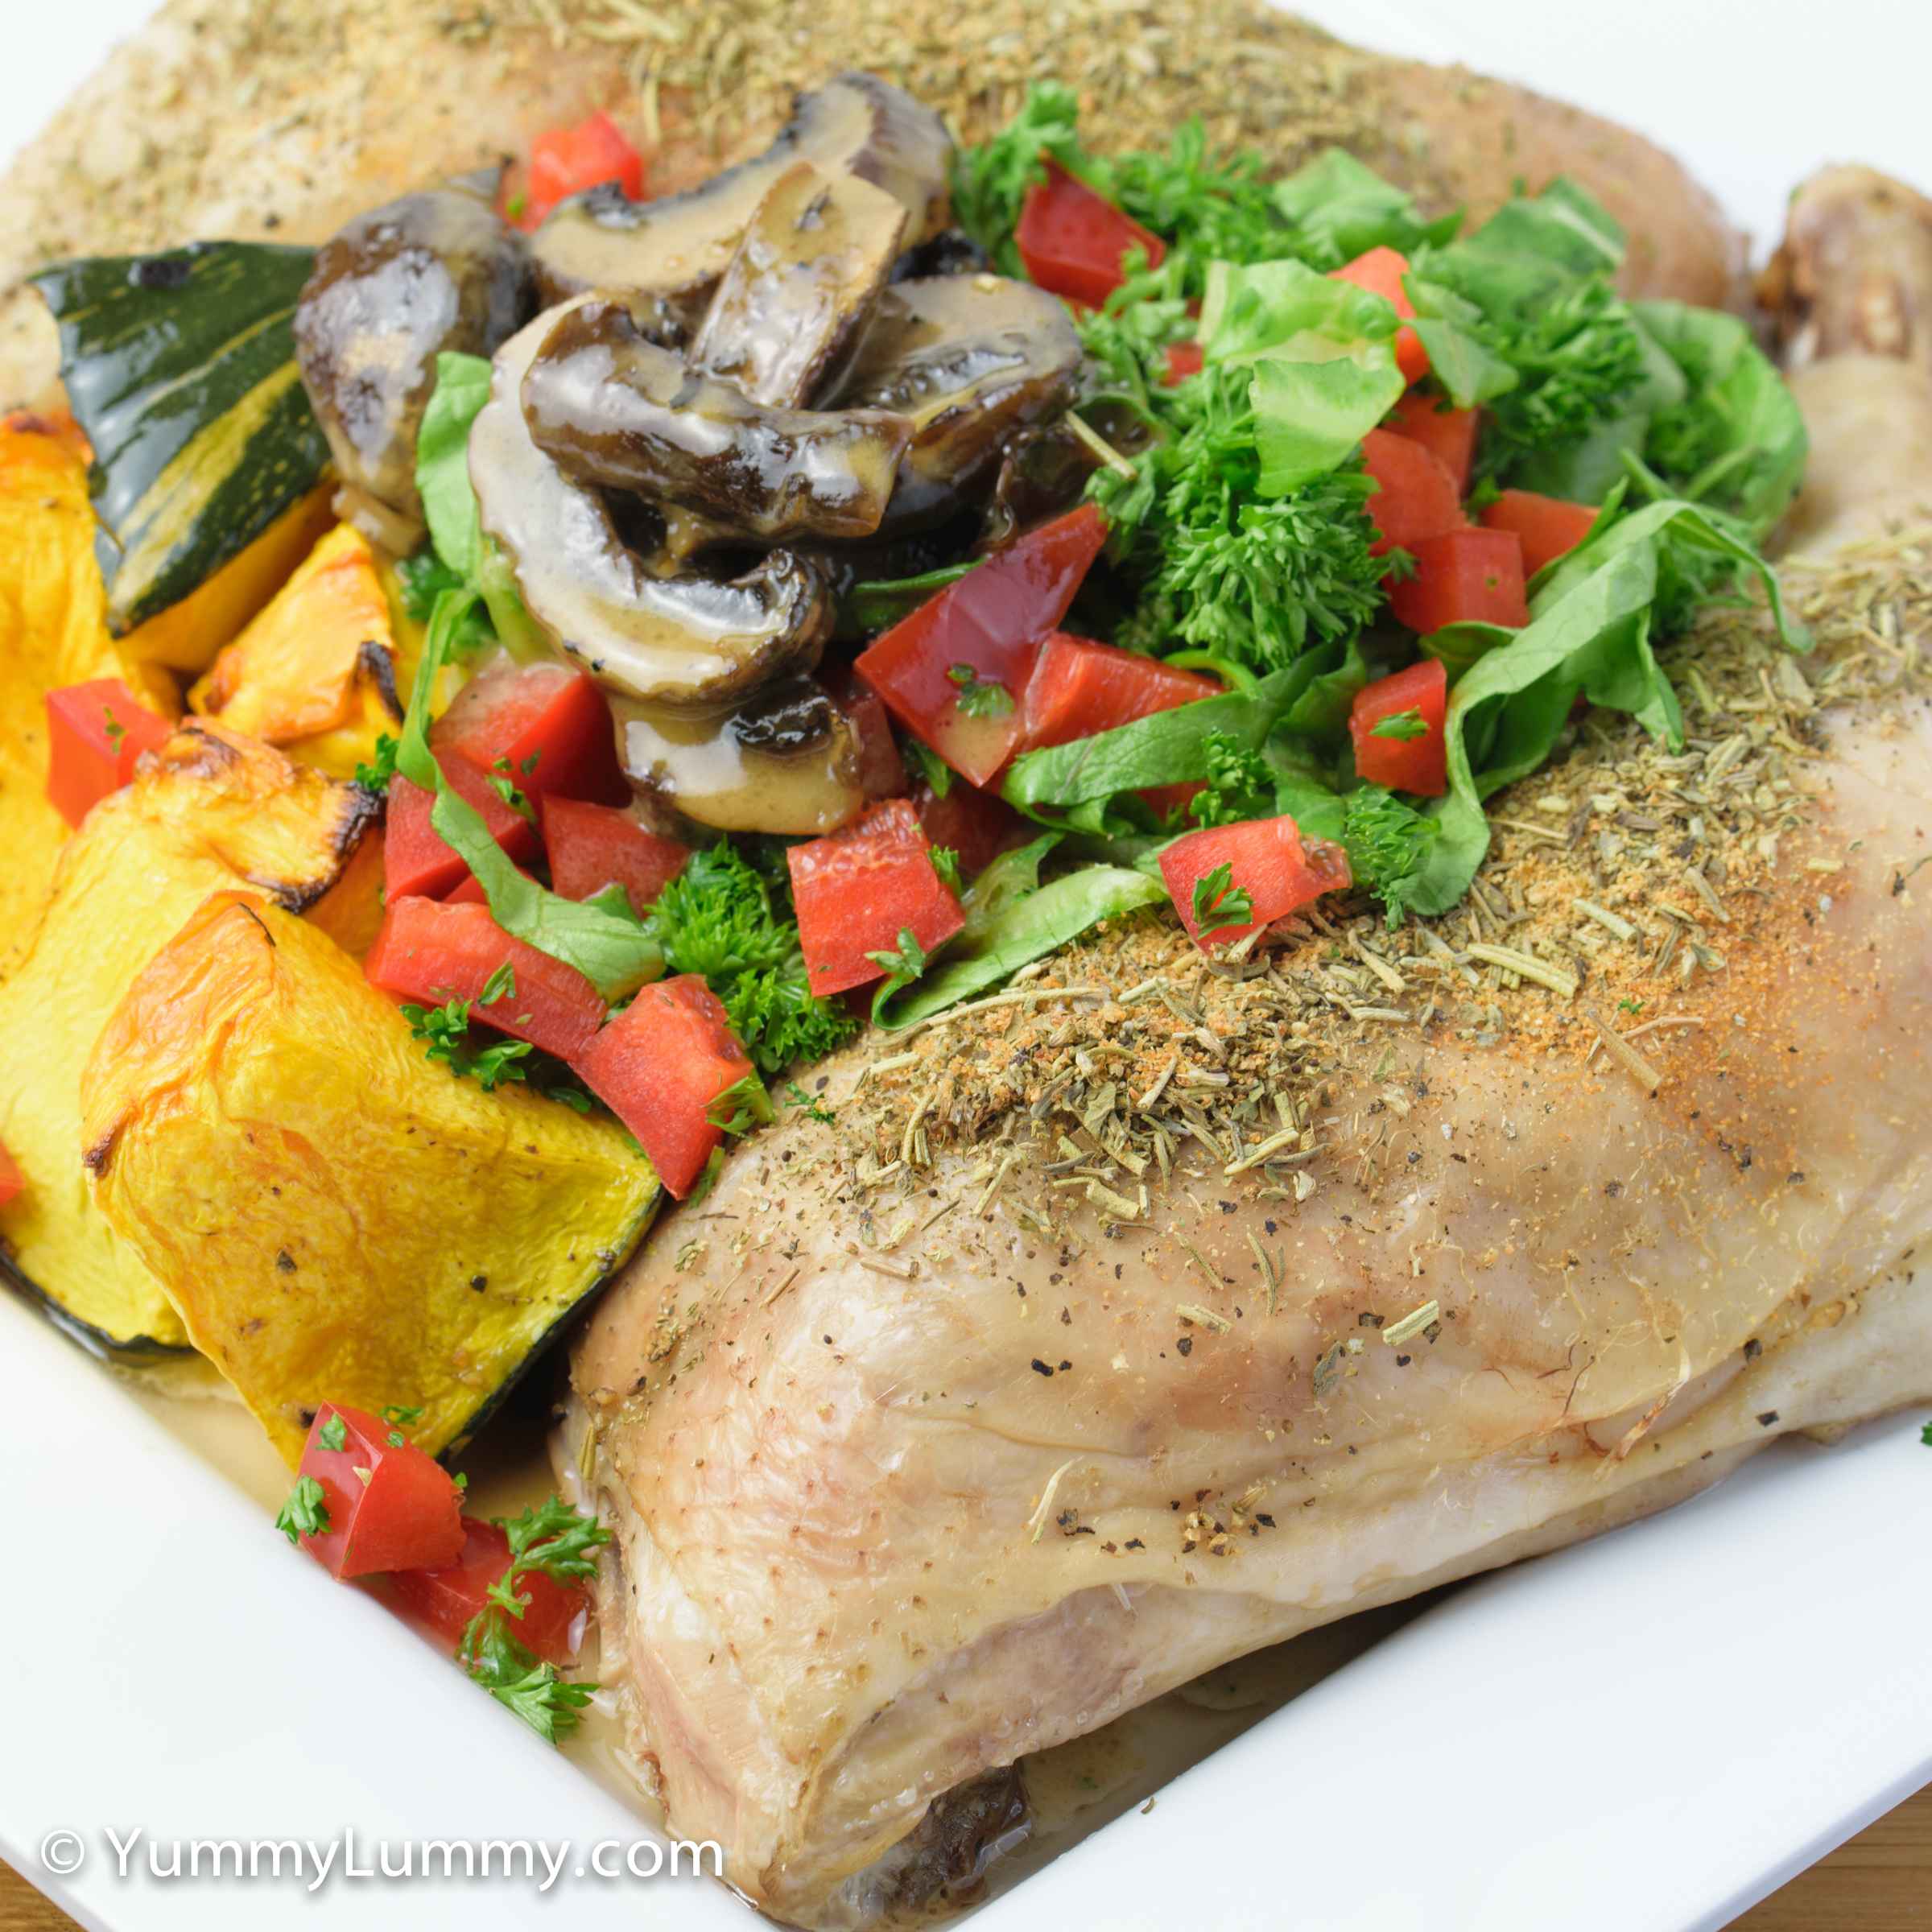 Tuesday night dinner. Roast Chicken Maryland with pumpkin and mushrooms.